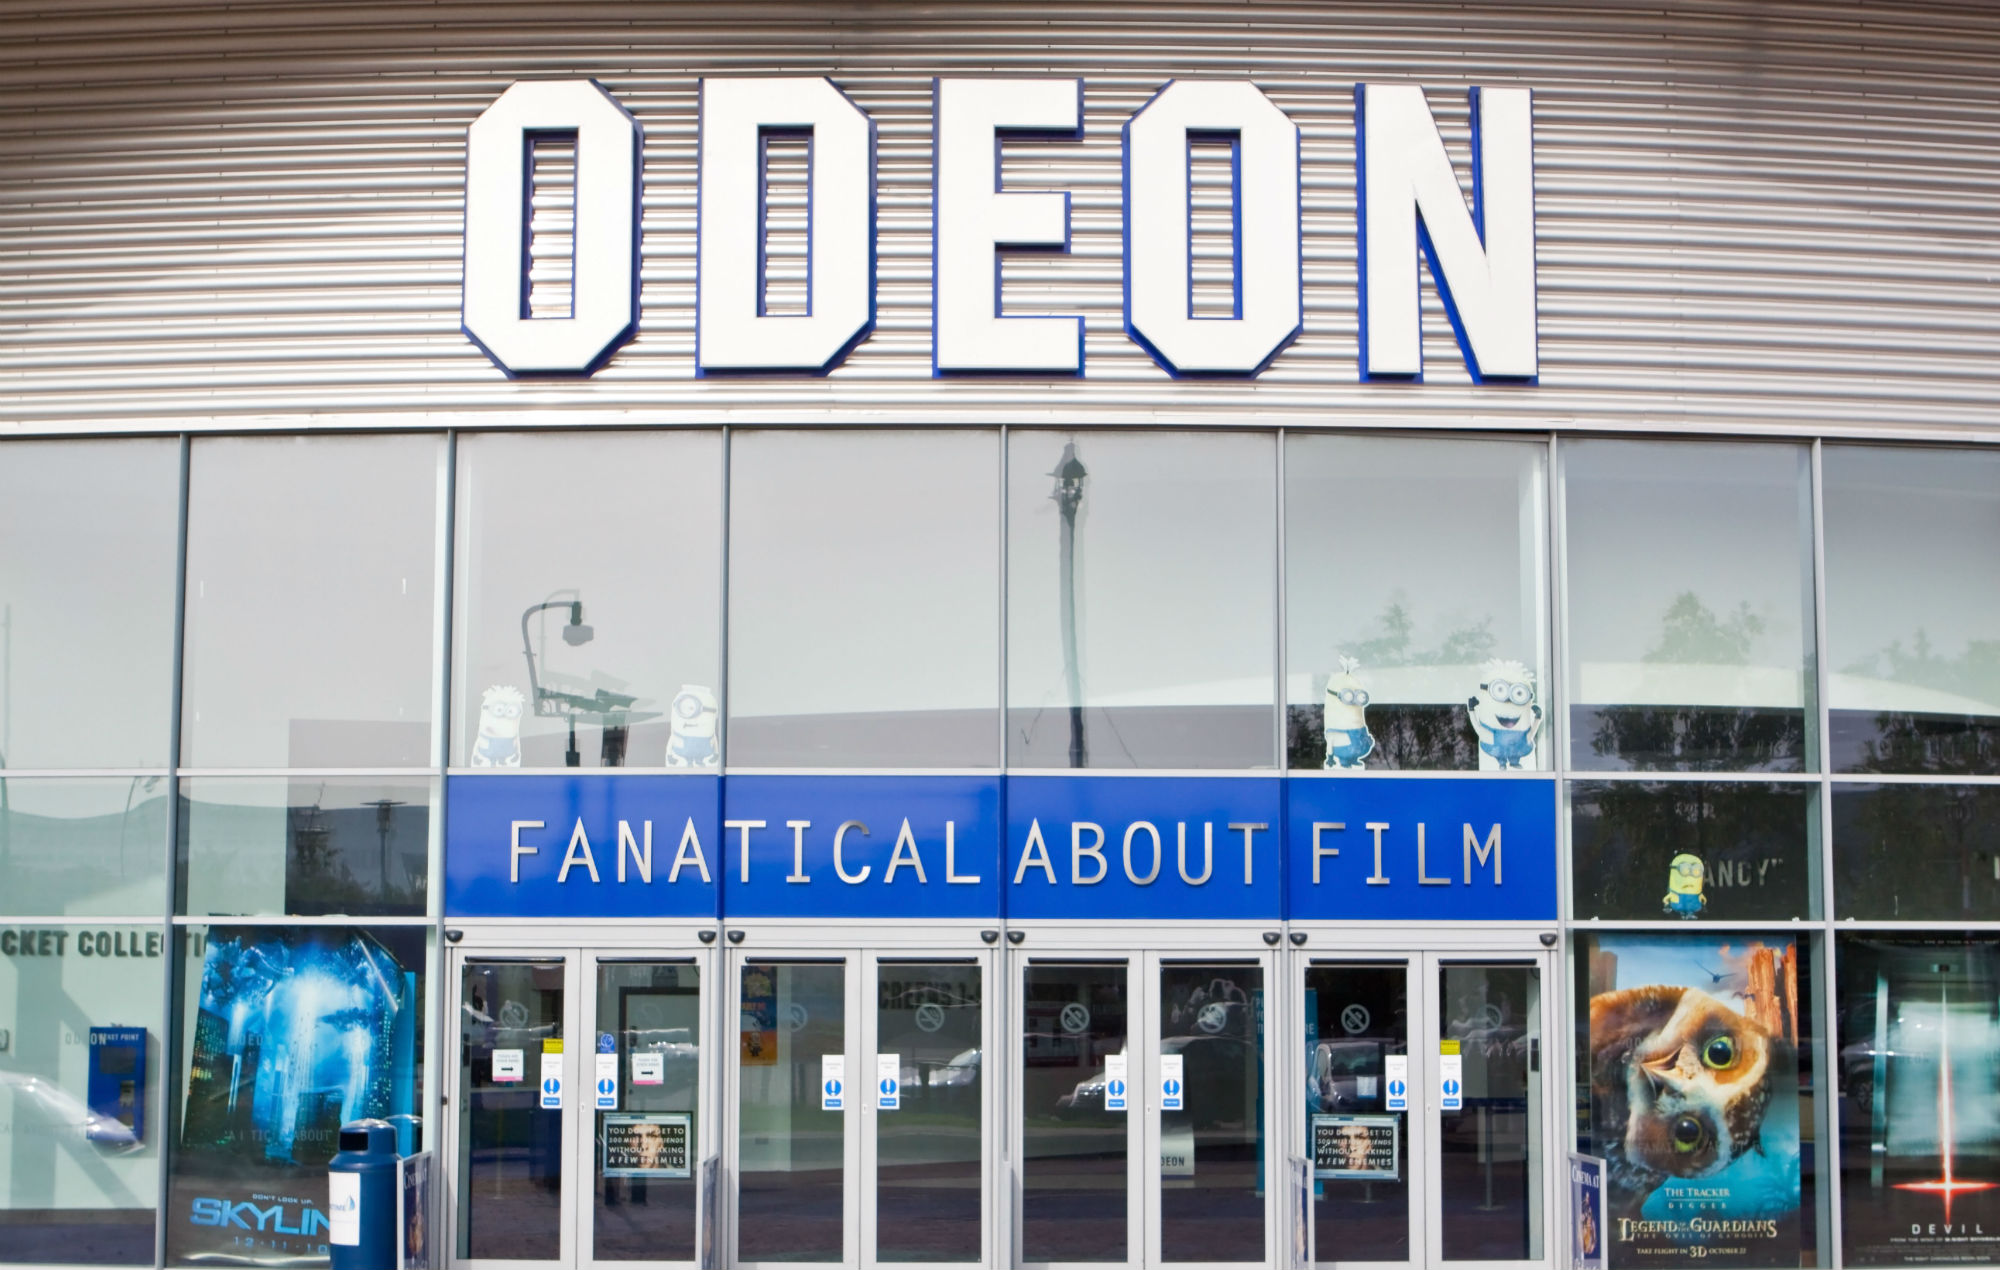 Odeon will reopen its cinemas this month after lockdown closures